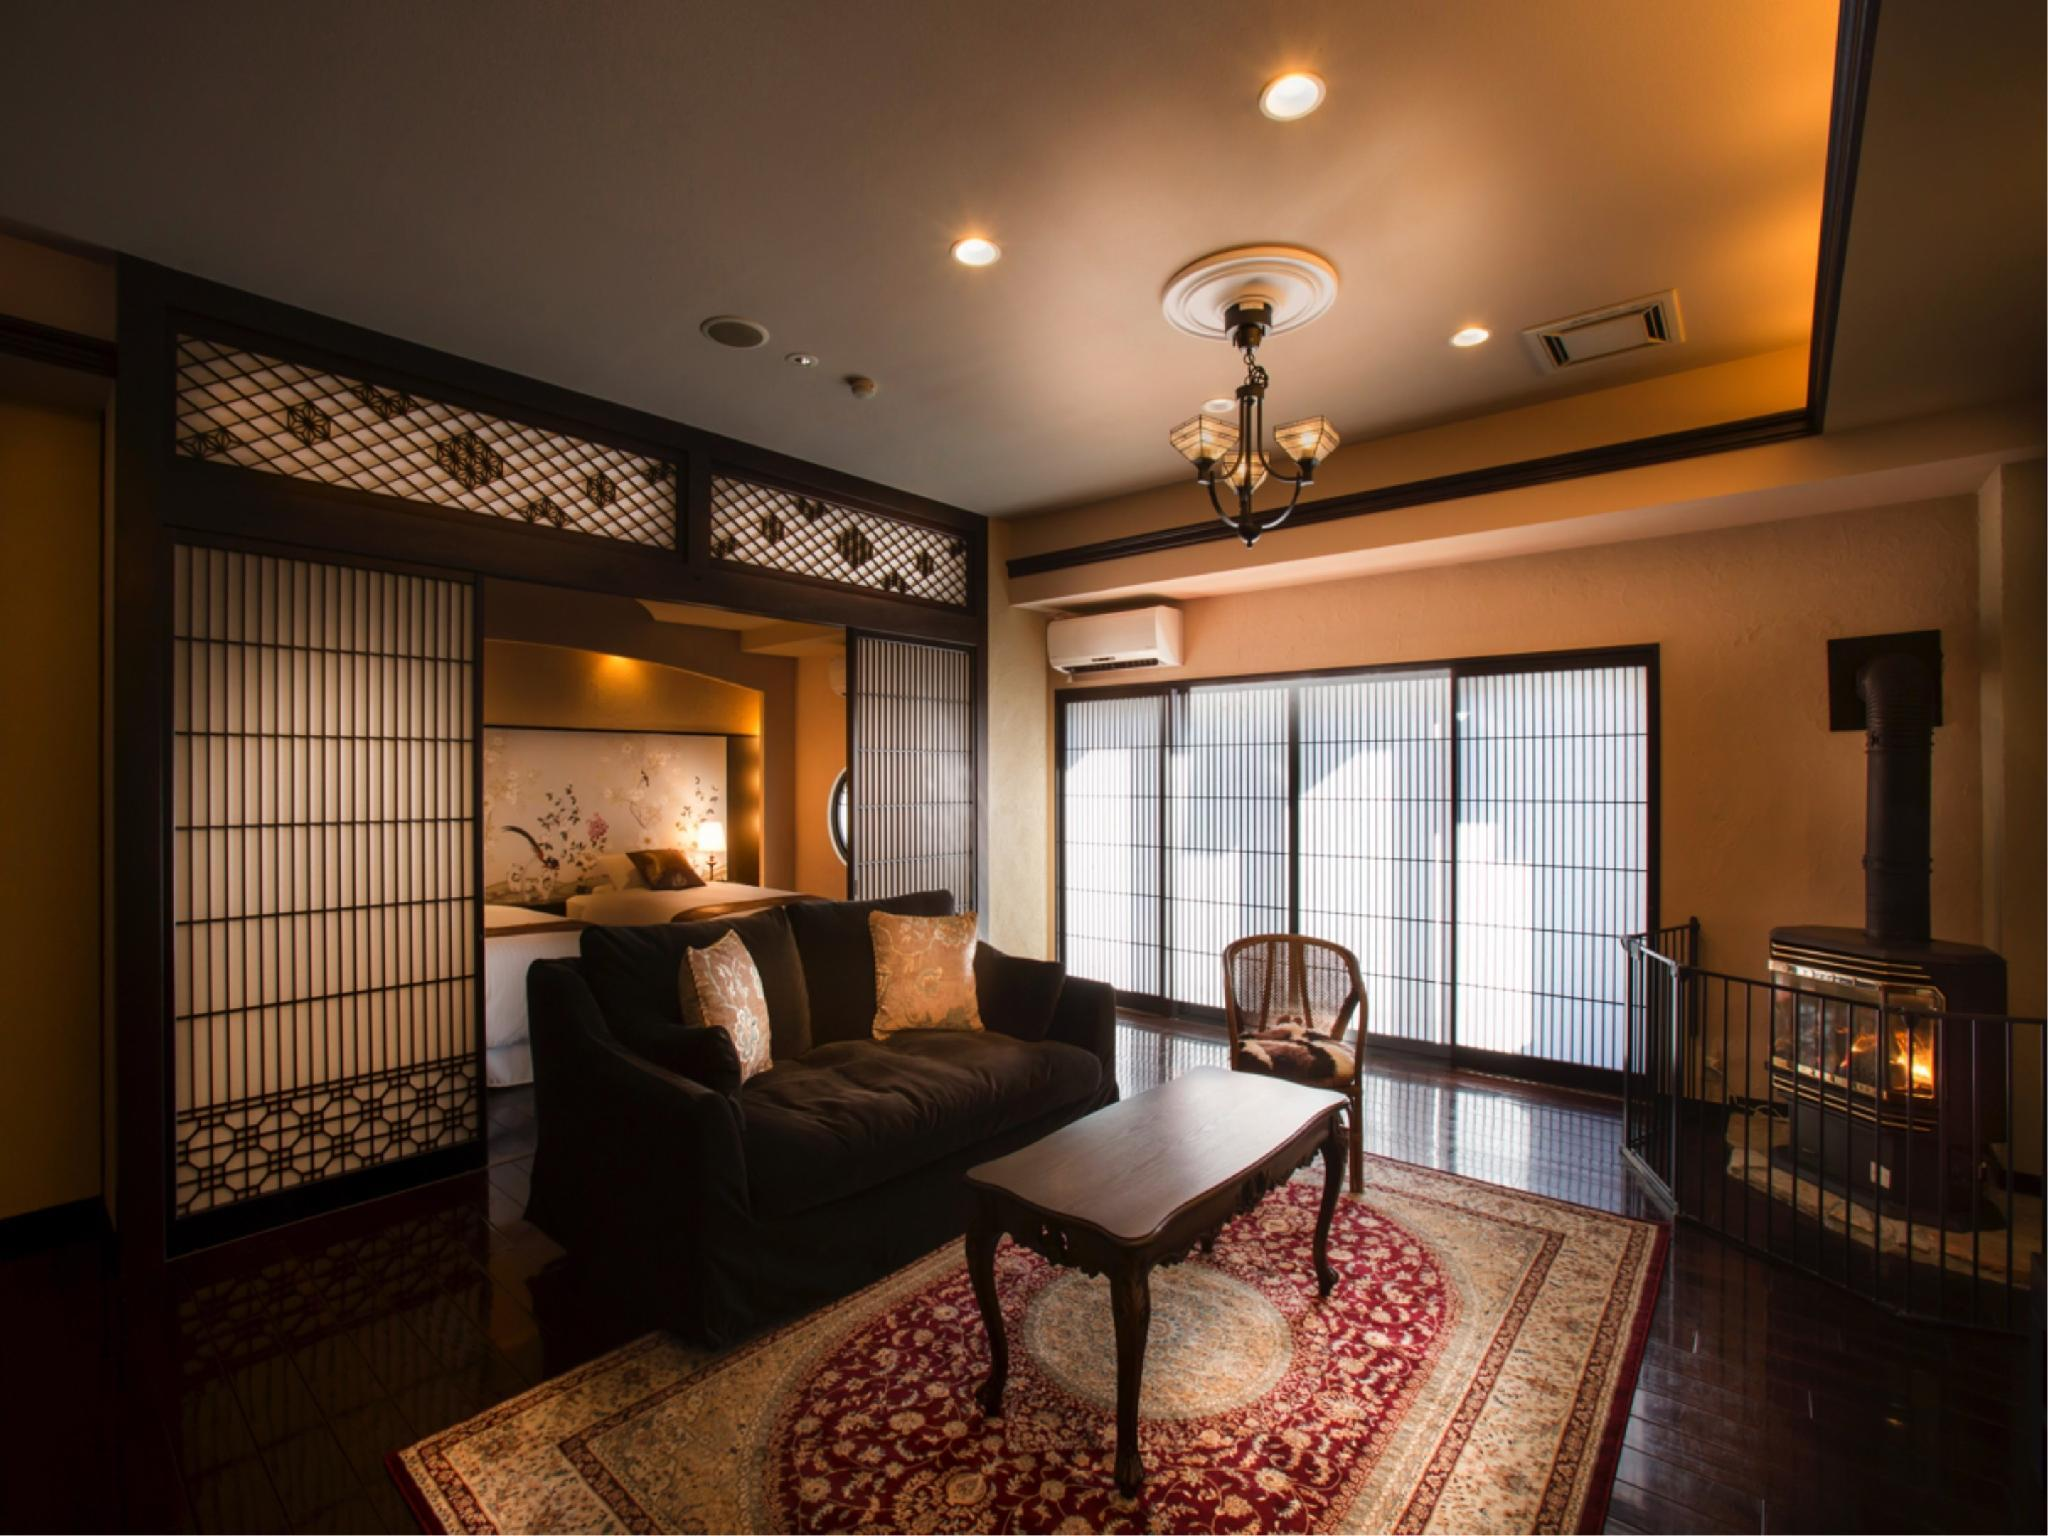 蓼科俱樂部 標準房+床 (Tateshina Club Standard Room with Bed(s))